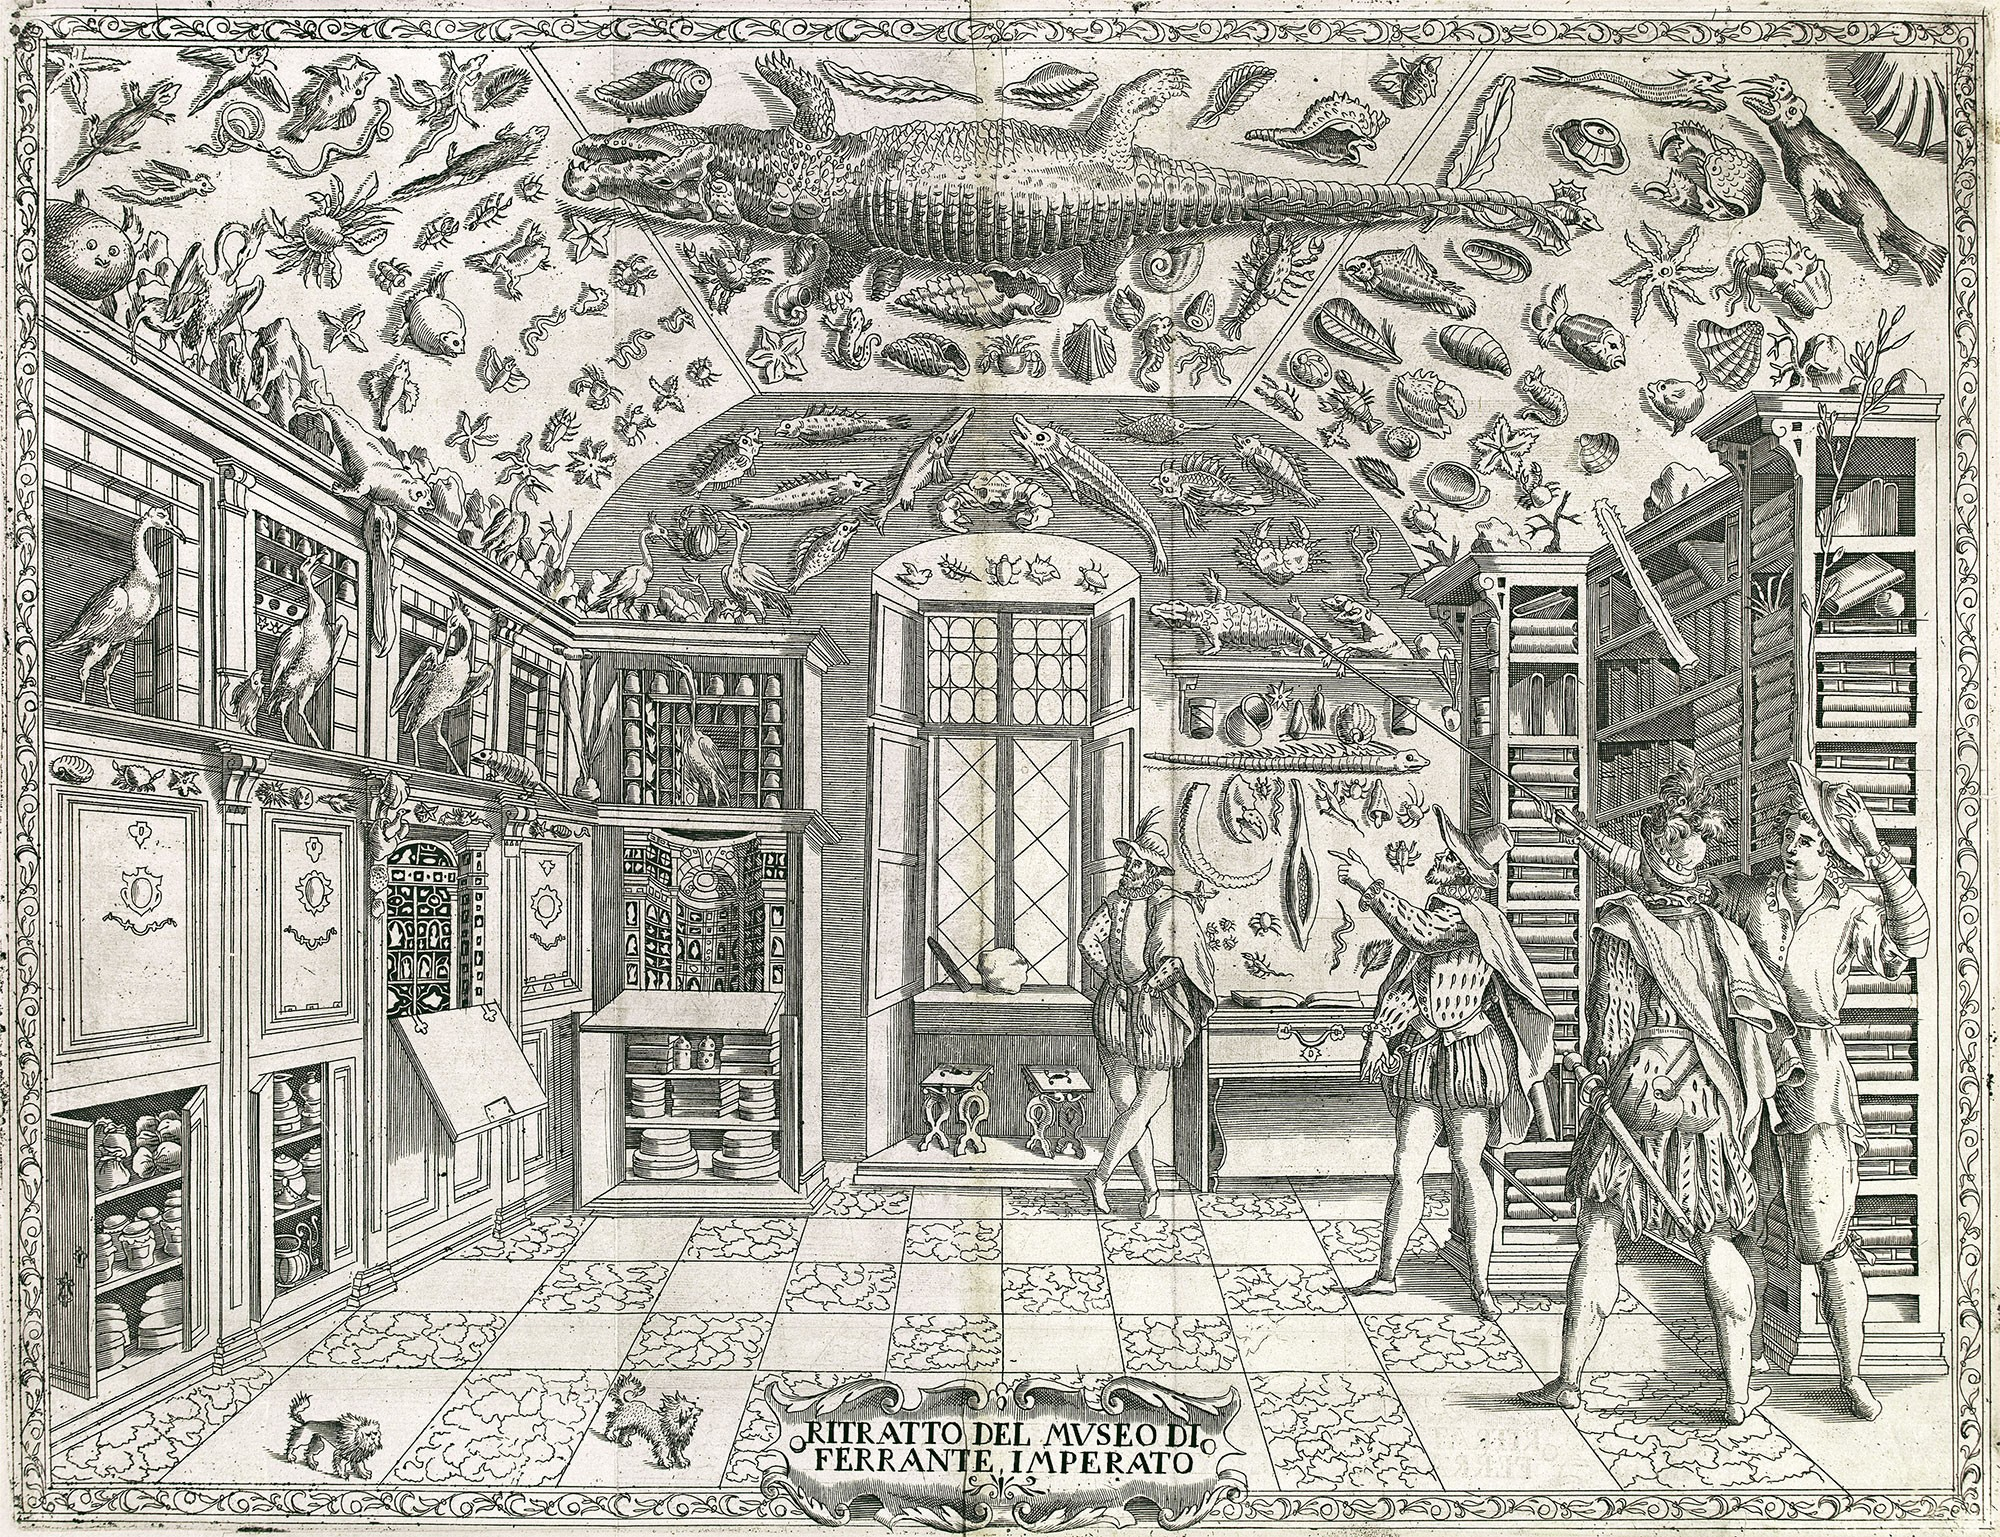 Fold-out engraving from Ferrante Imperato's Dell'Historia Naturale (Naples 1599), the earliest illustration of a natural history cabinet. Source: Wikimedia.